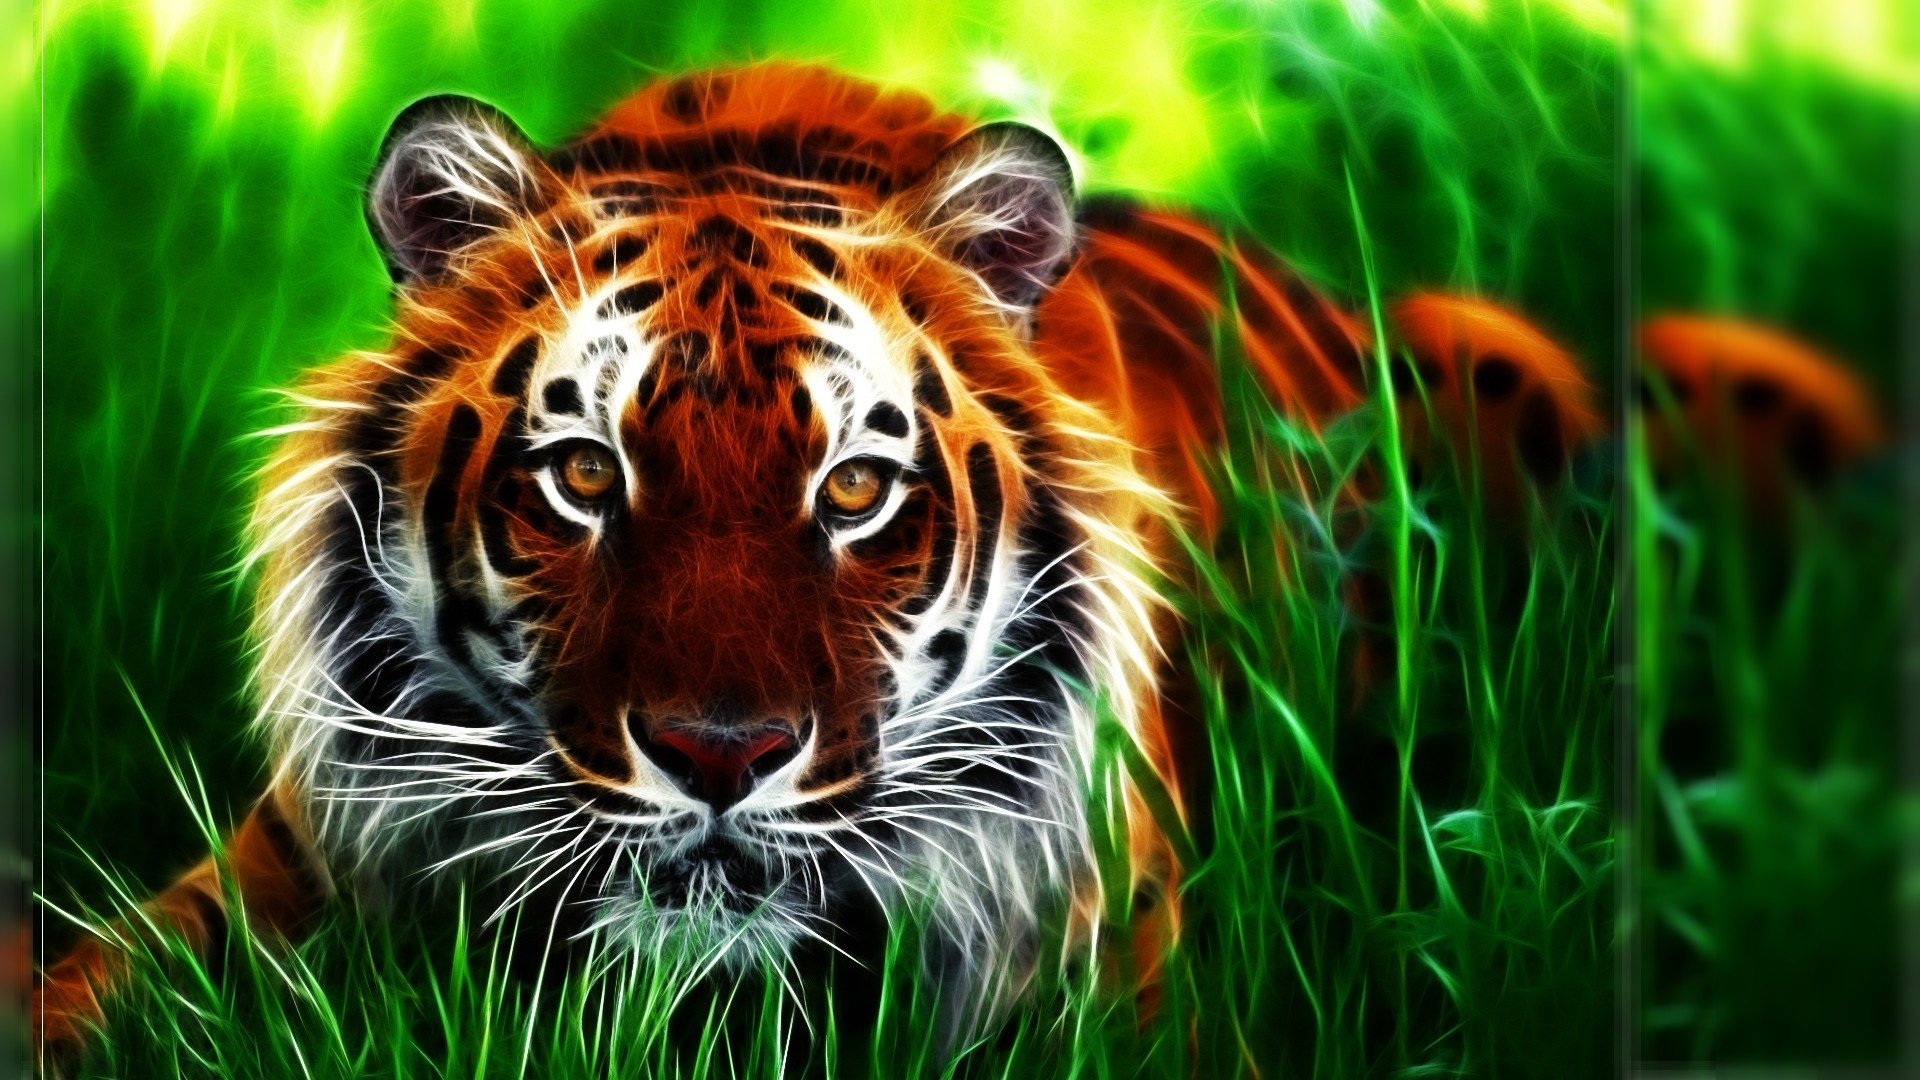 Res: 1920x1080, Cool Tiger Backgrounds – Free wallpaper download